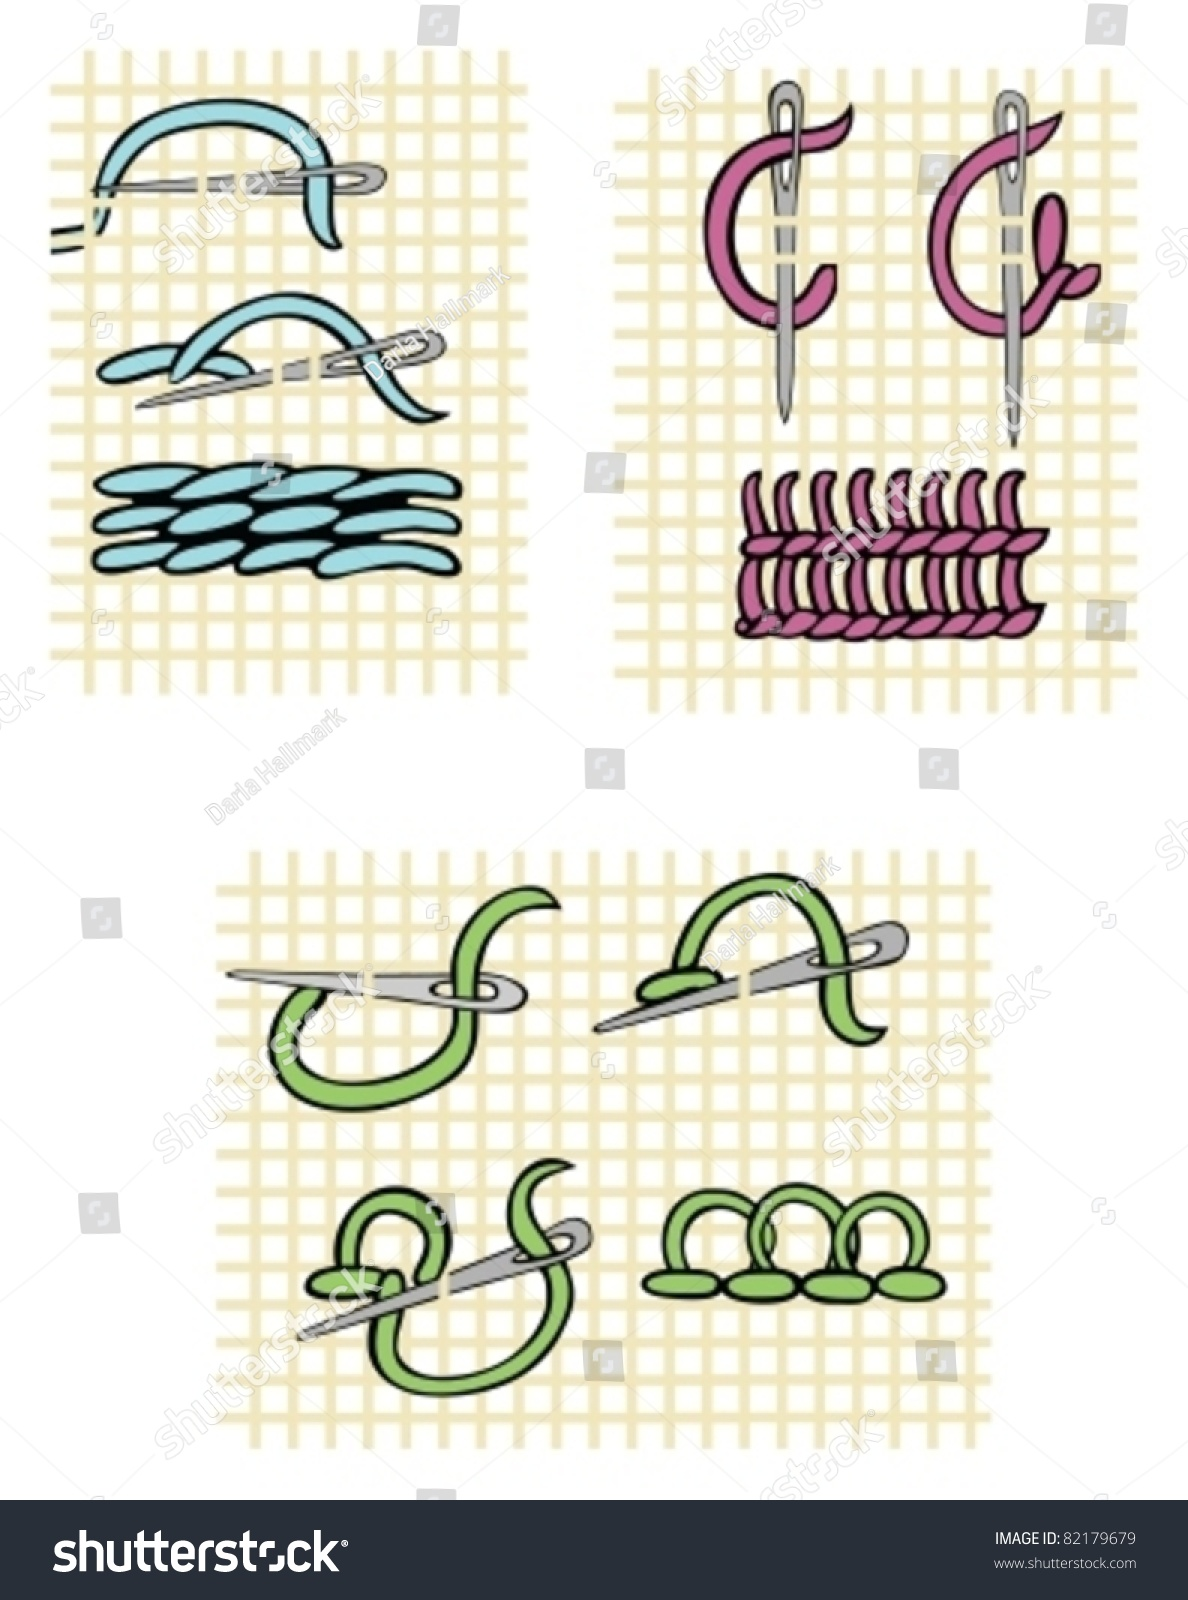 Traditional Crewel Embroidery Stitches How To Step By